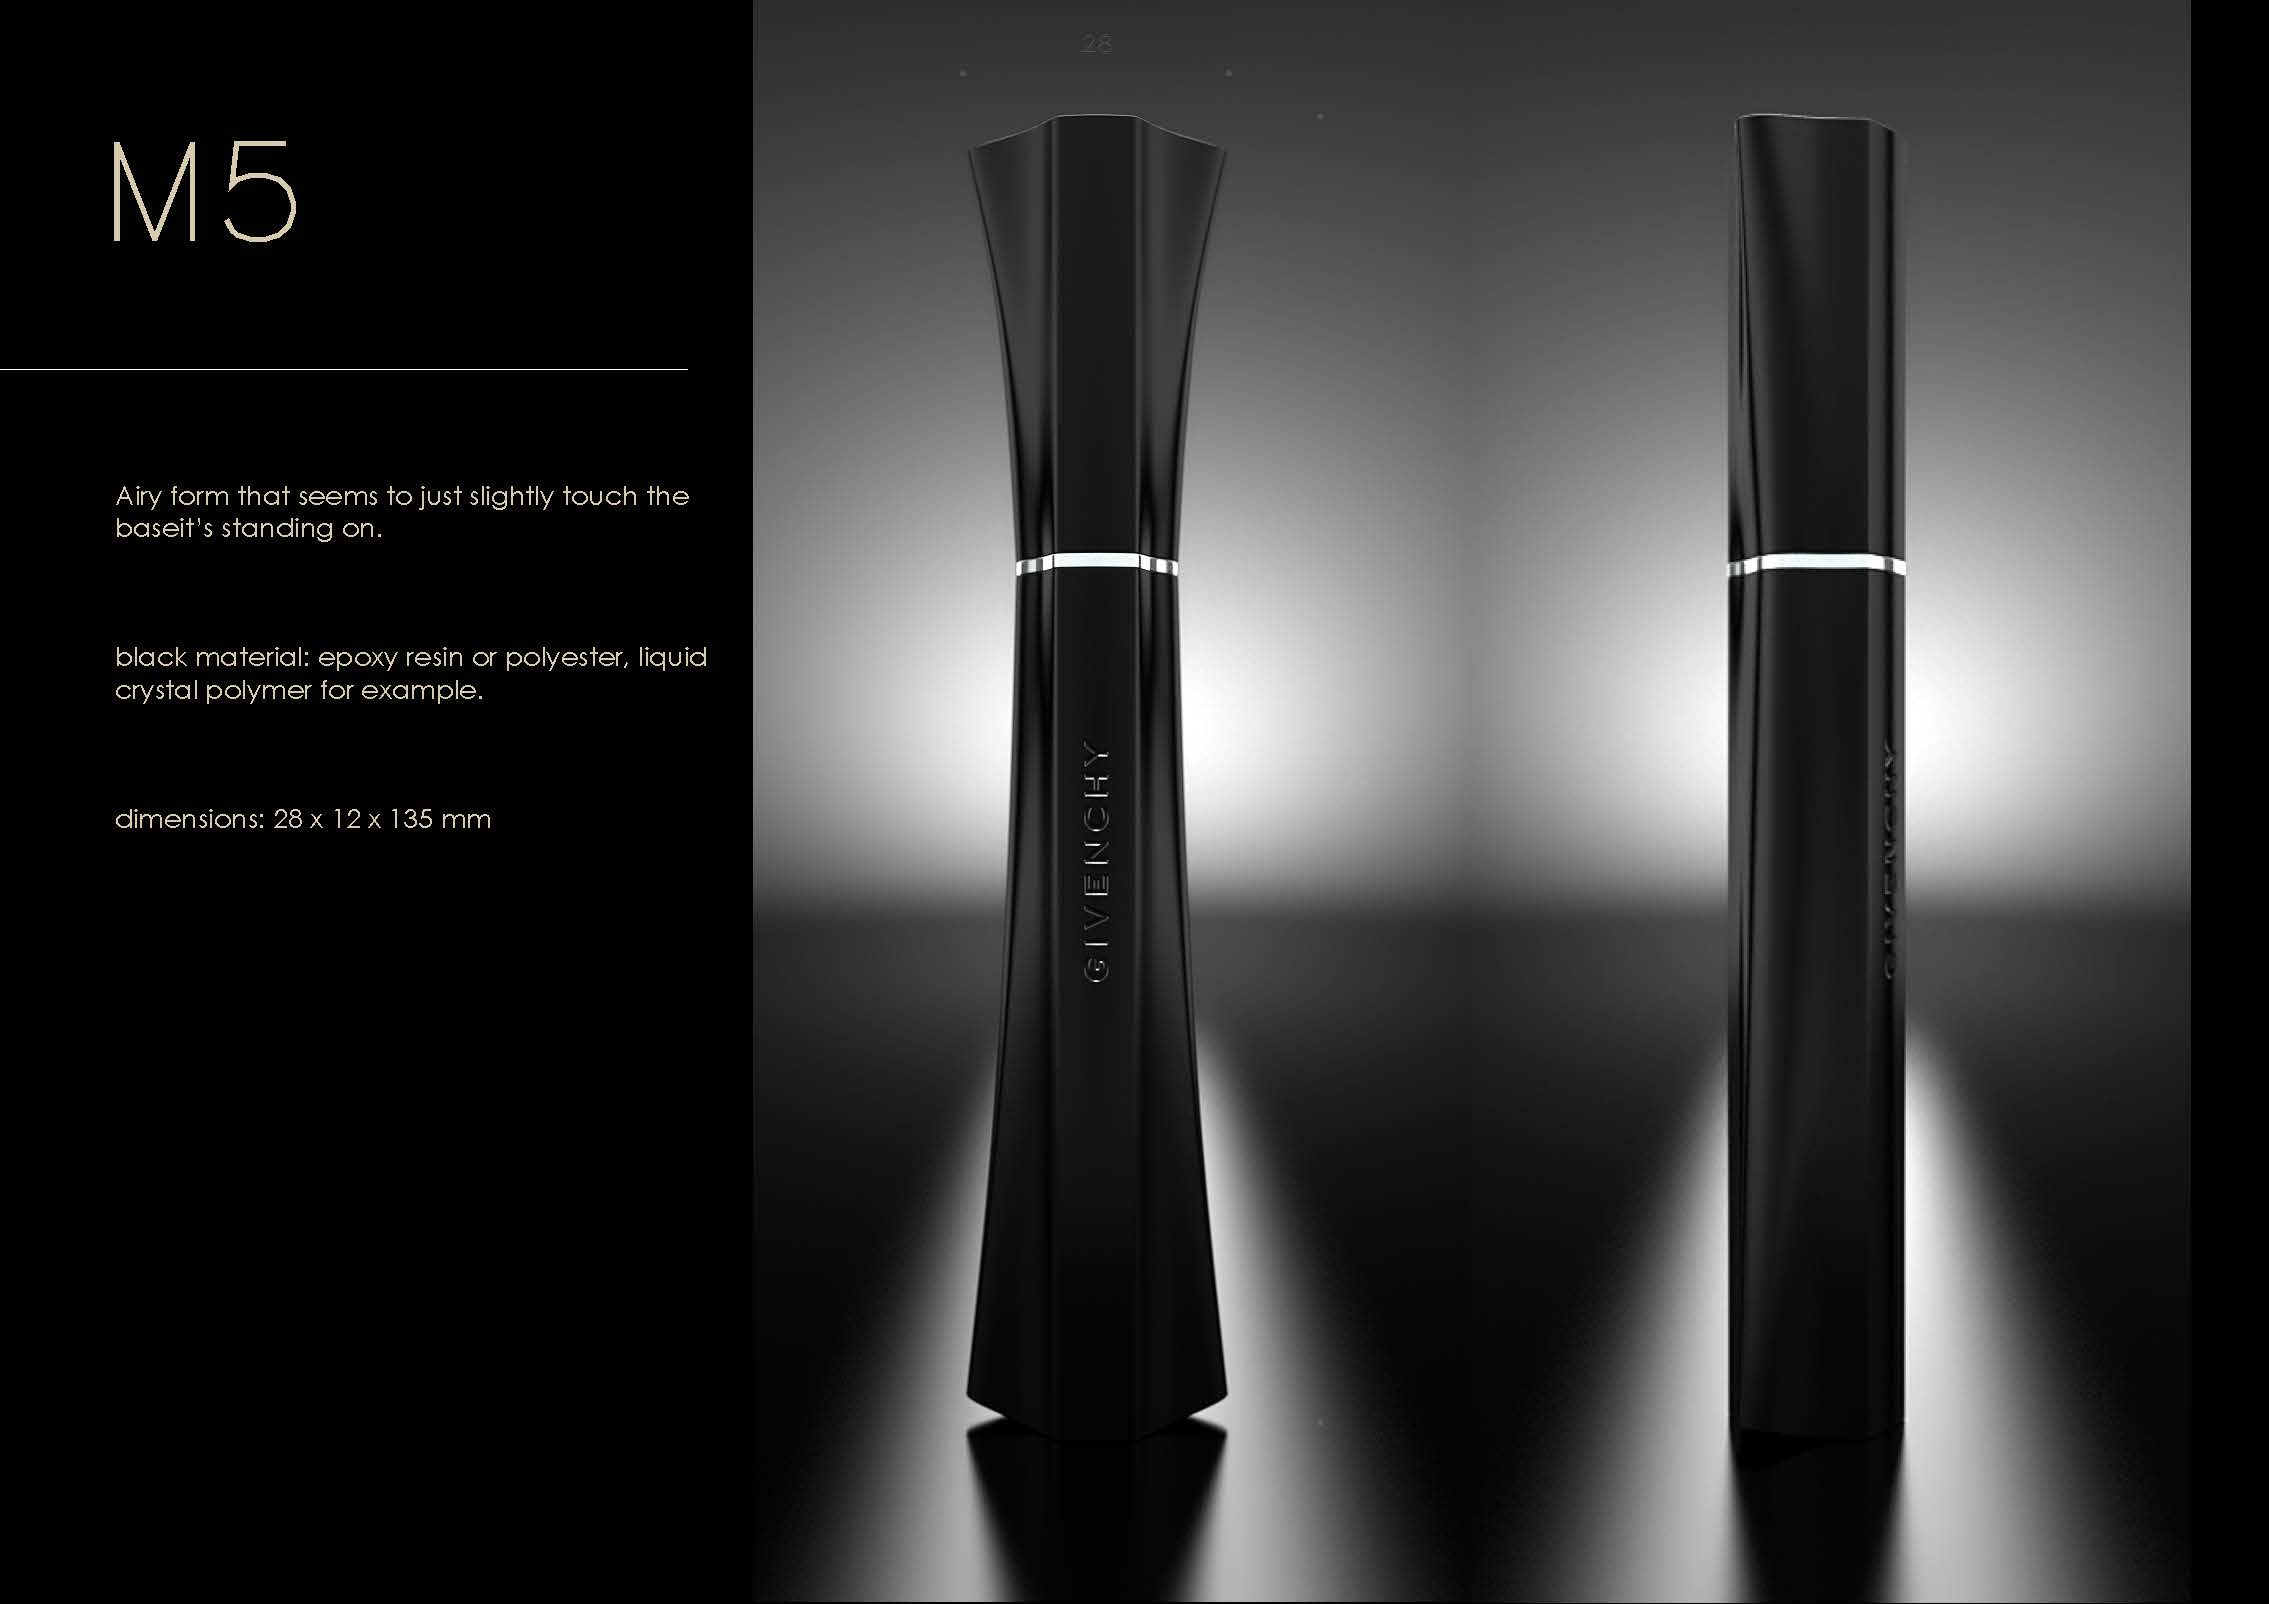 Givenchy mascaras w dimensions, I_Page_12.jpg